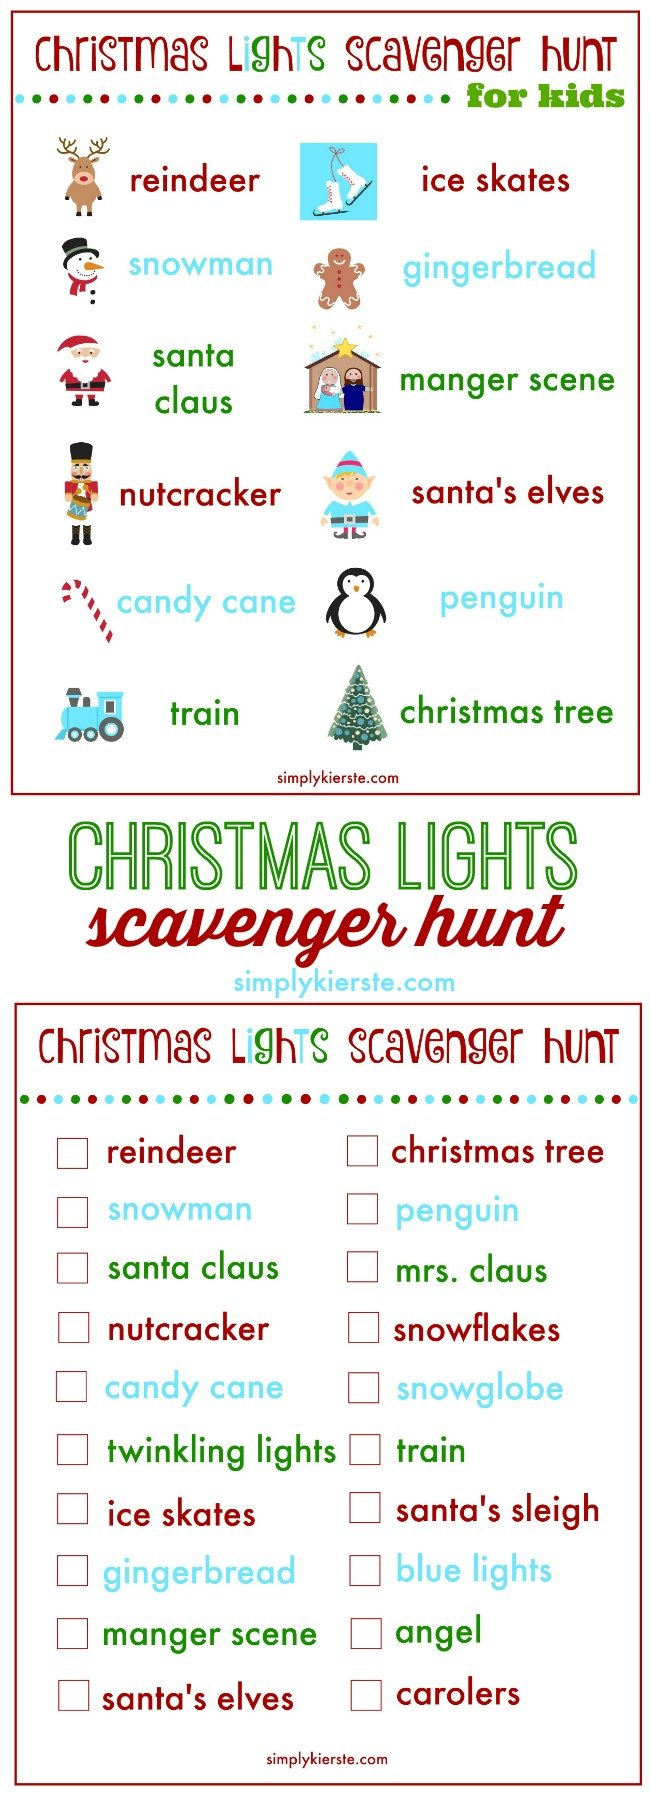 christmas lights scavenger hunt | free printable | simplykierste.com